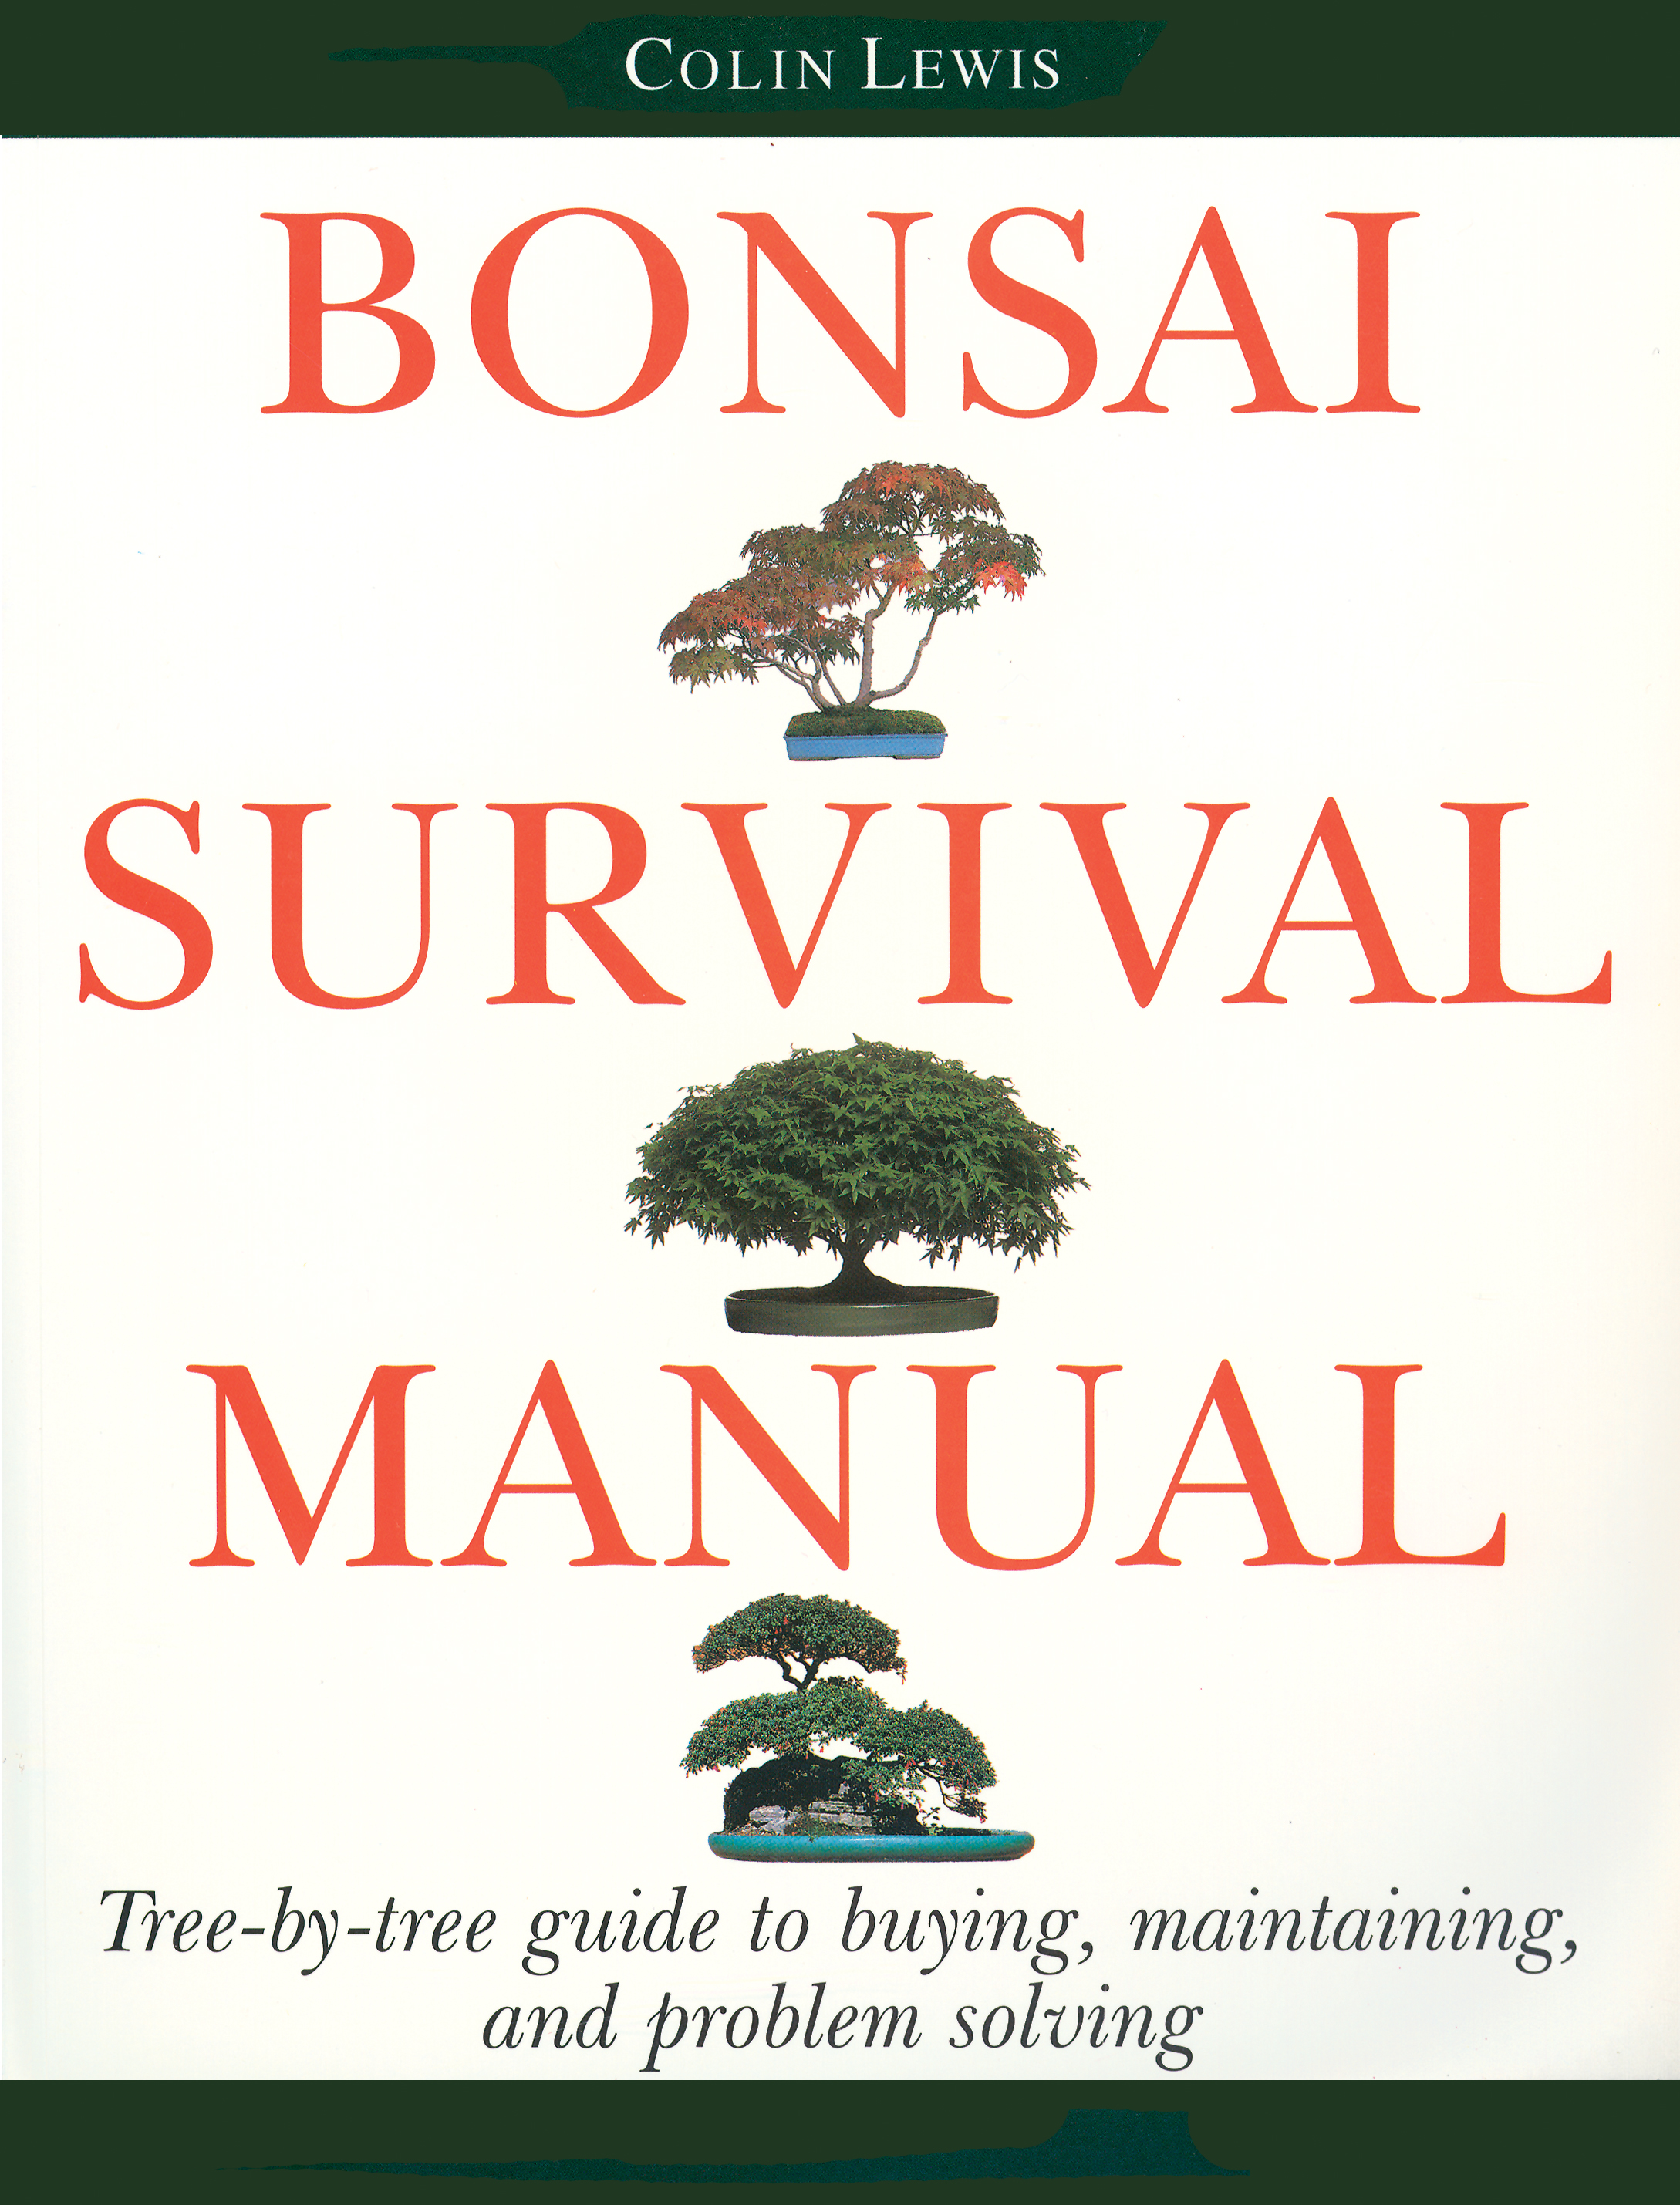 Bonsai Survival Manual Tree-by-Tree Guide to Buying, Maintaining, and Problem Solving - Colin Lewis